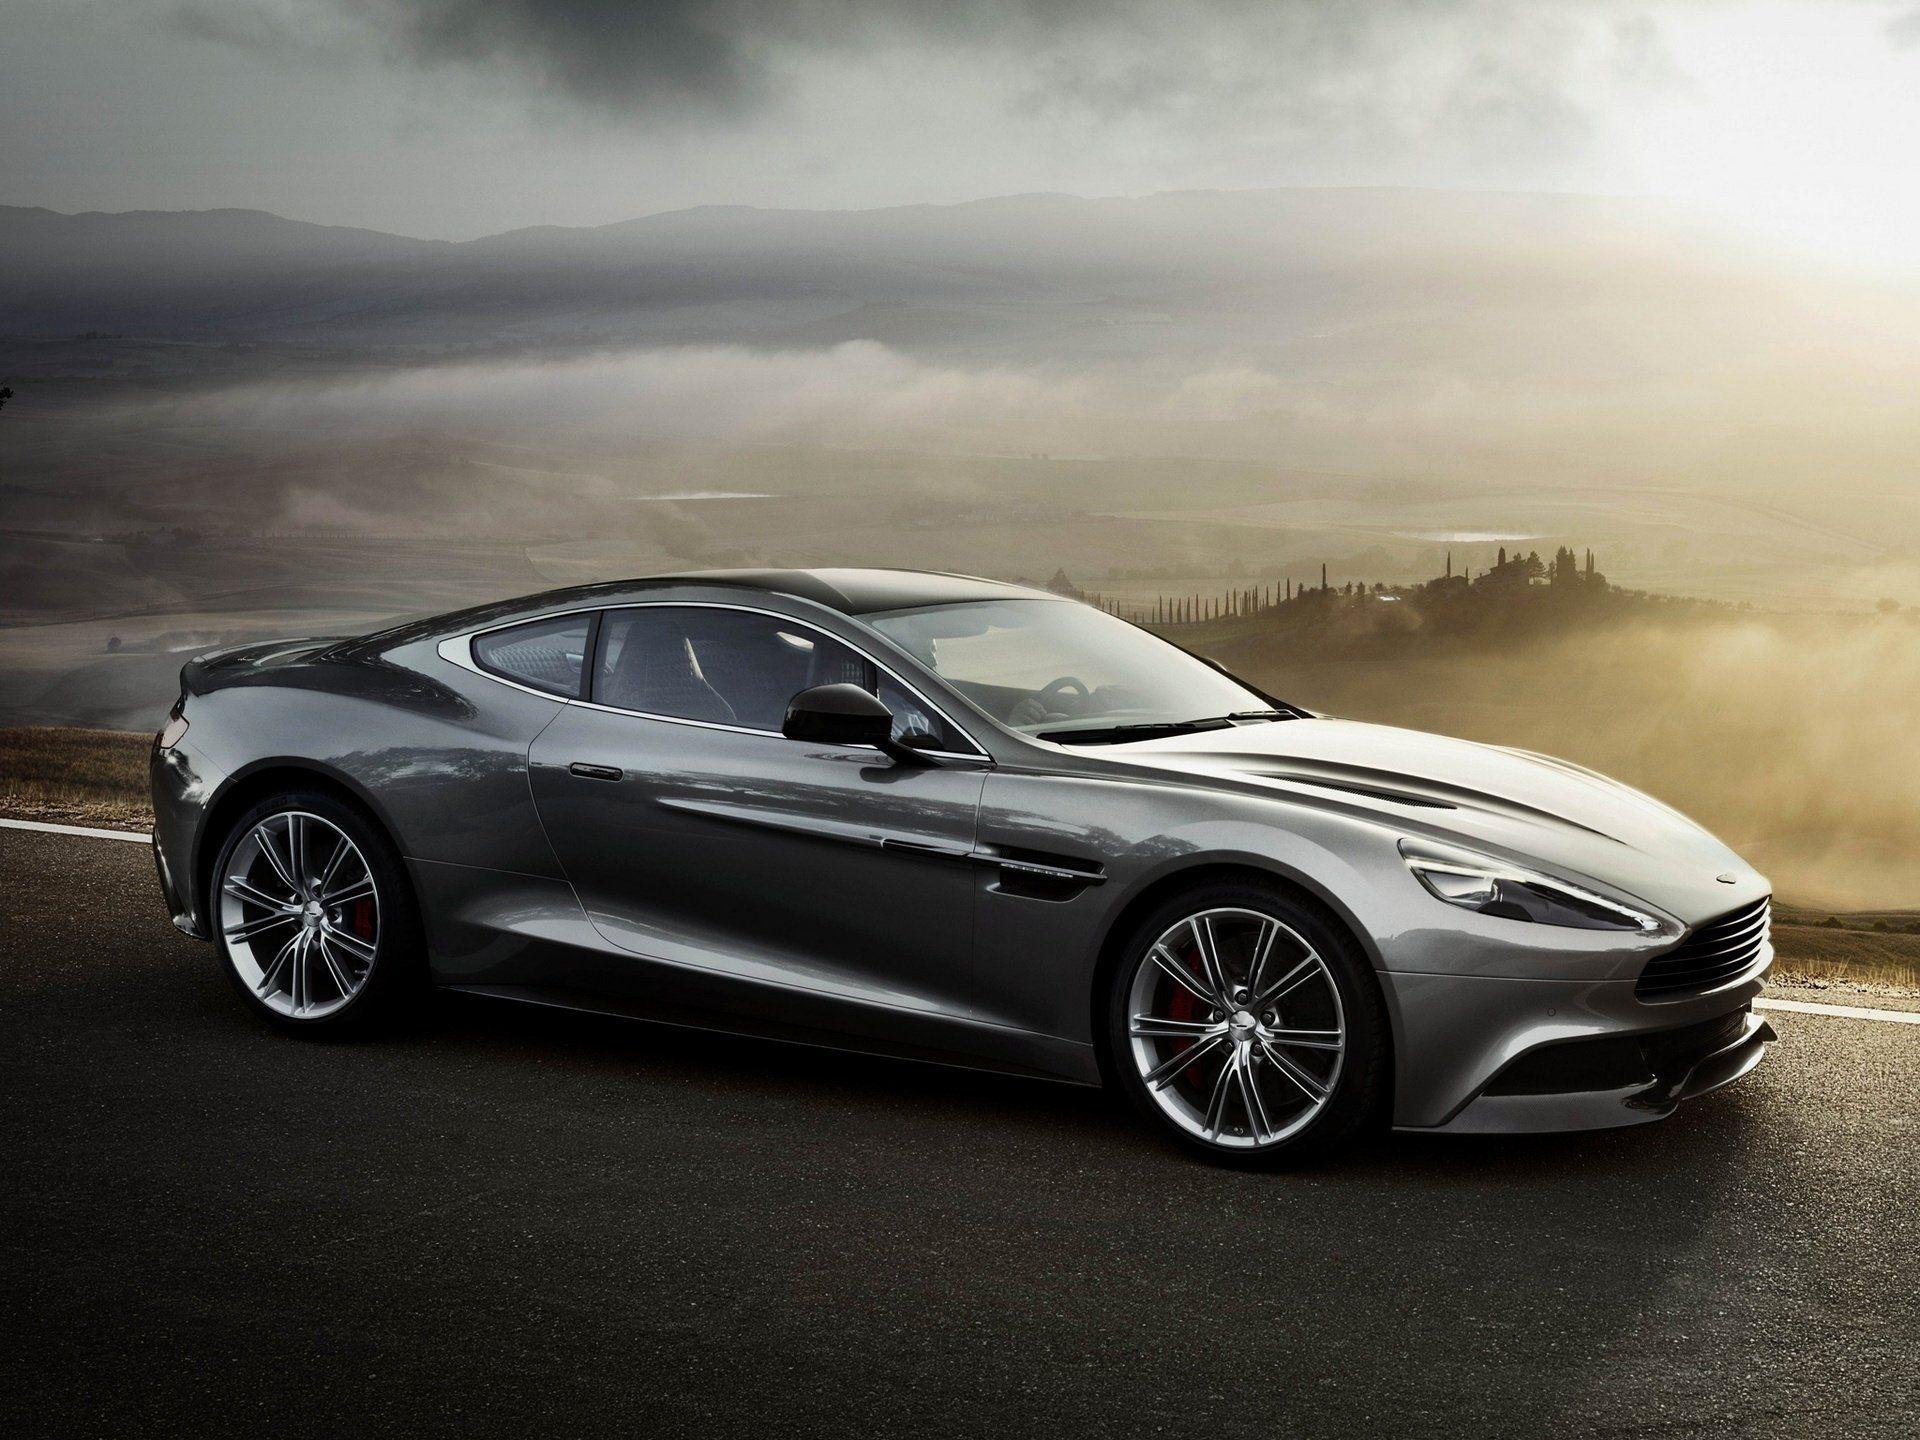 40 Aston Martin Vanquish HD Wallpapers